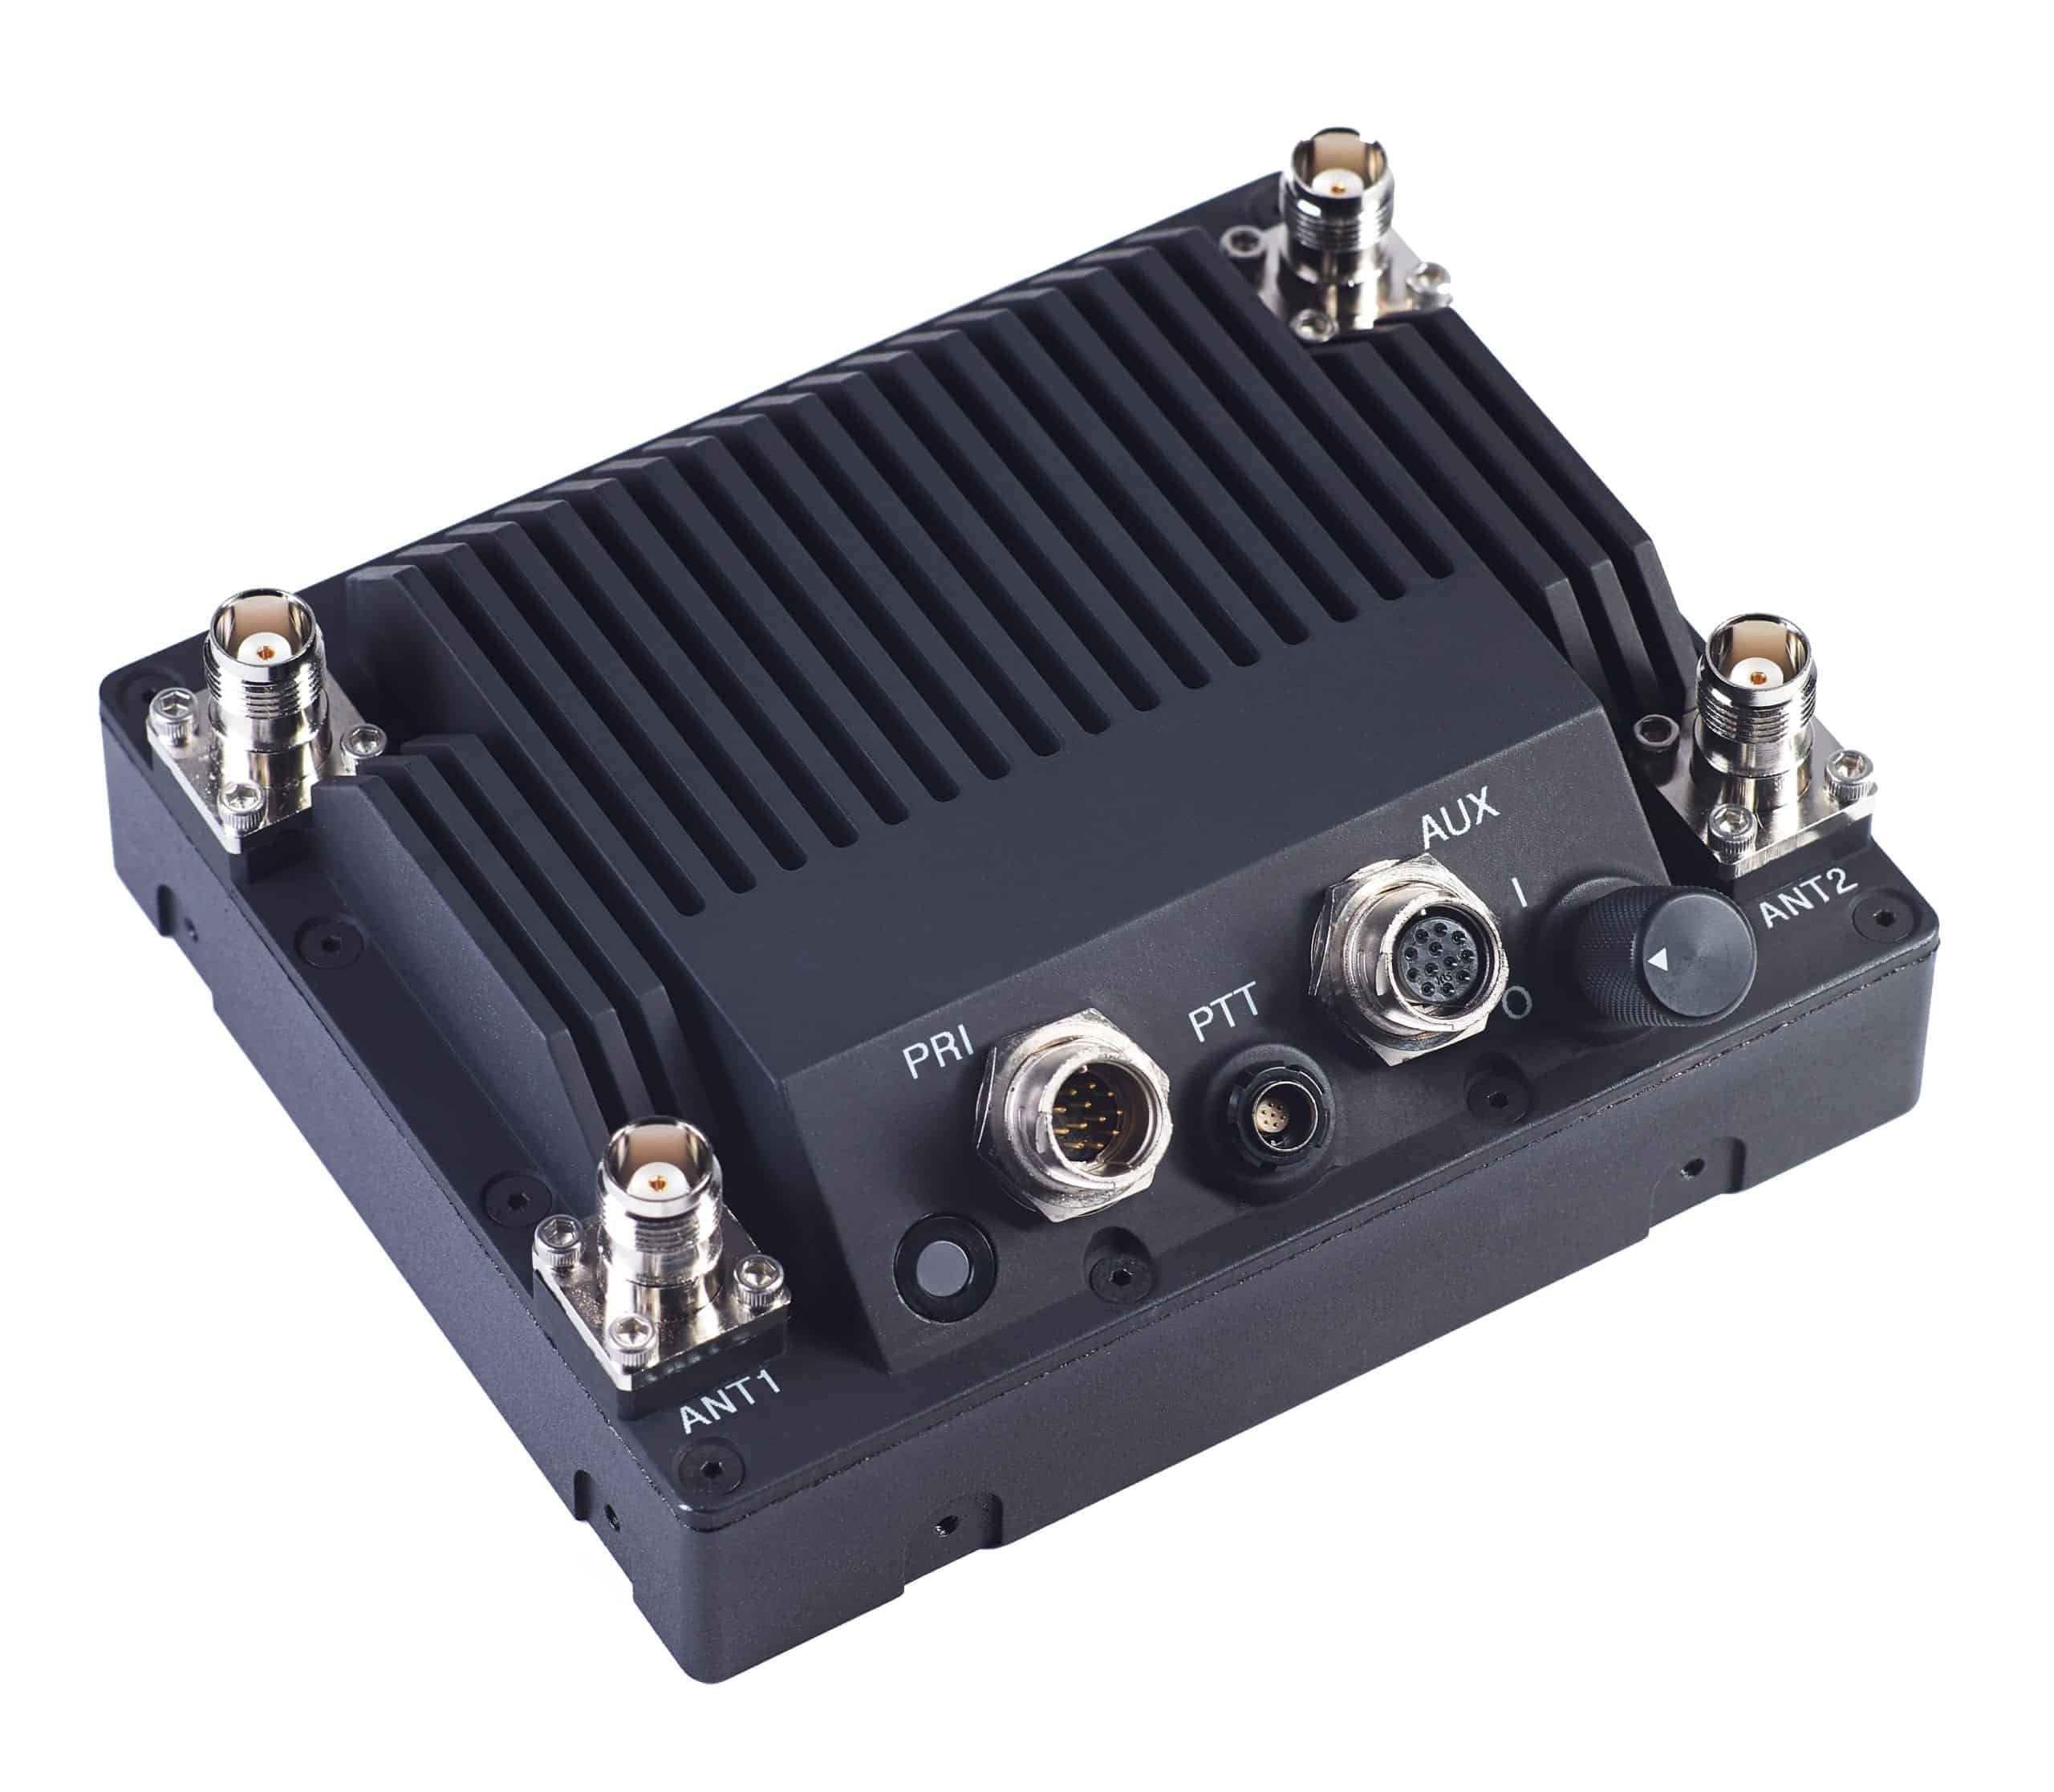 SC4400 (4x4) MIMO Radio for UAVs and Robotics